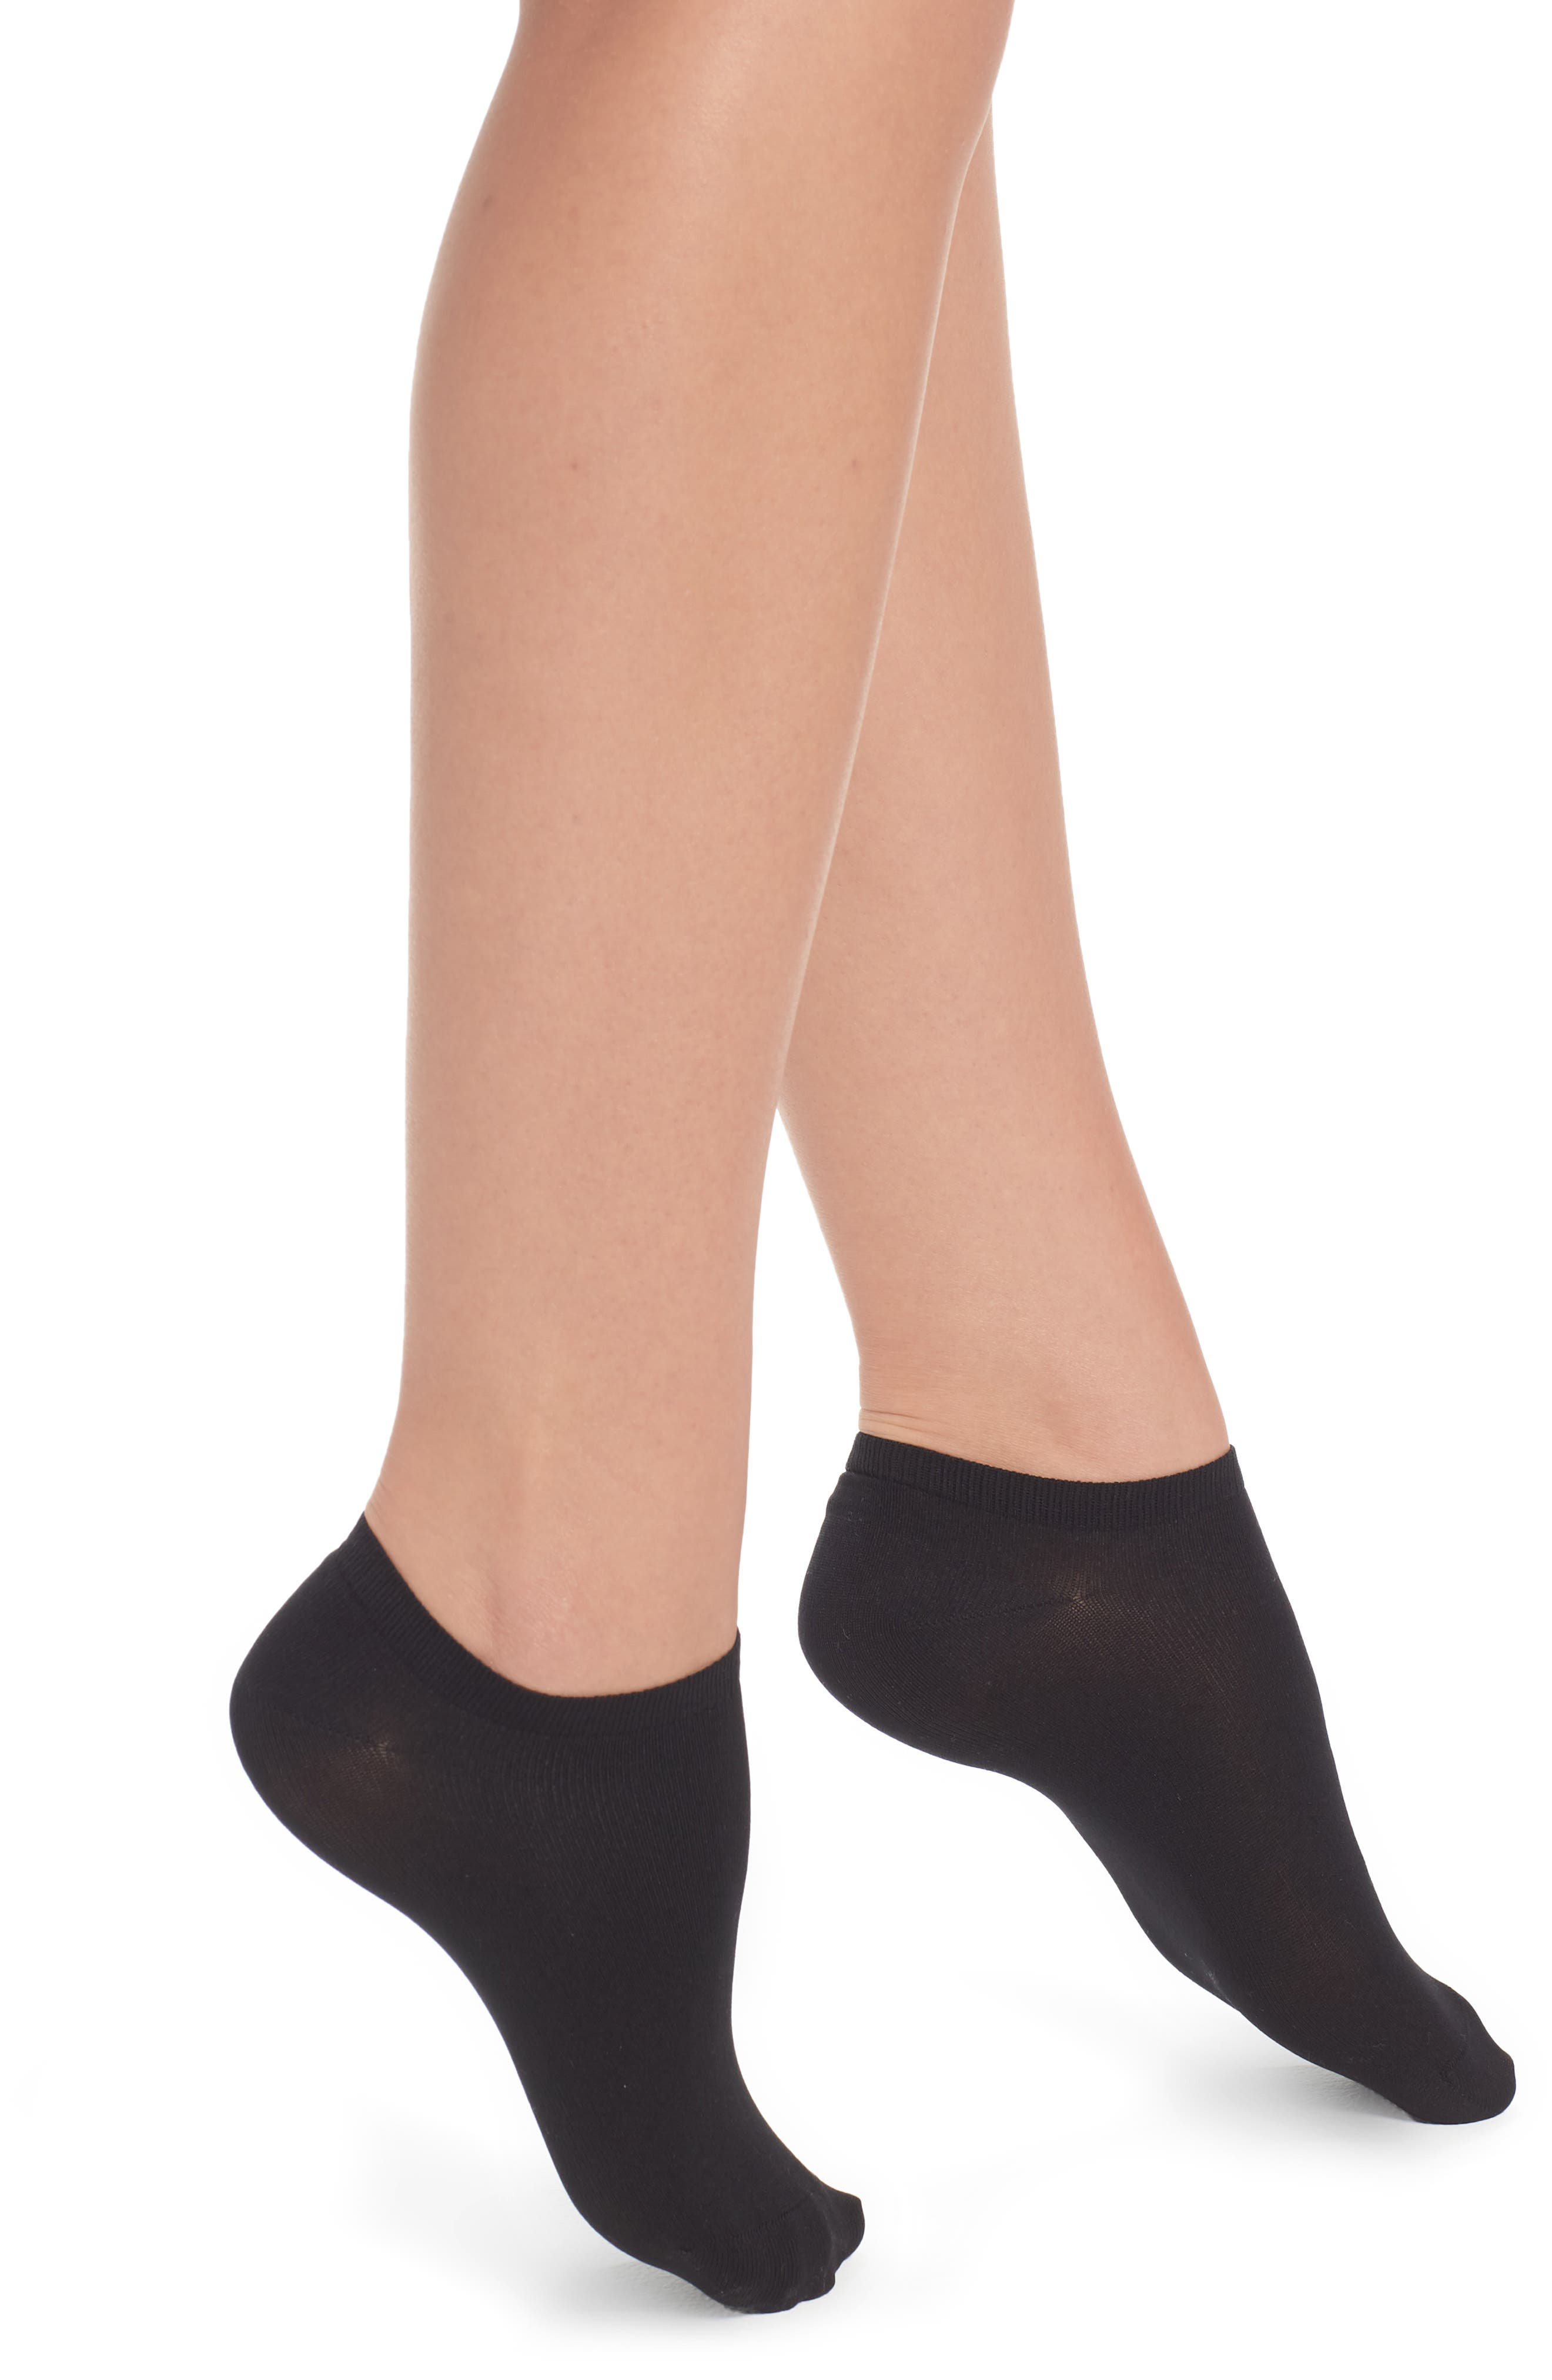 Sara Low-Cut Socks,                             Main thumbnail 1, color,                             Black